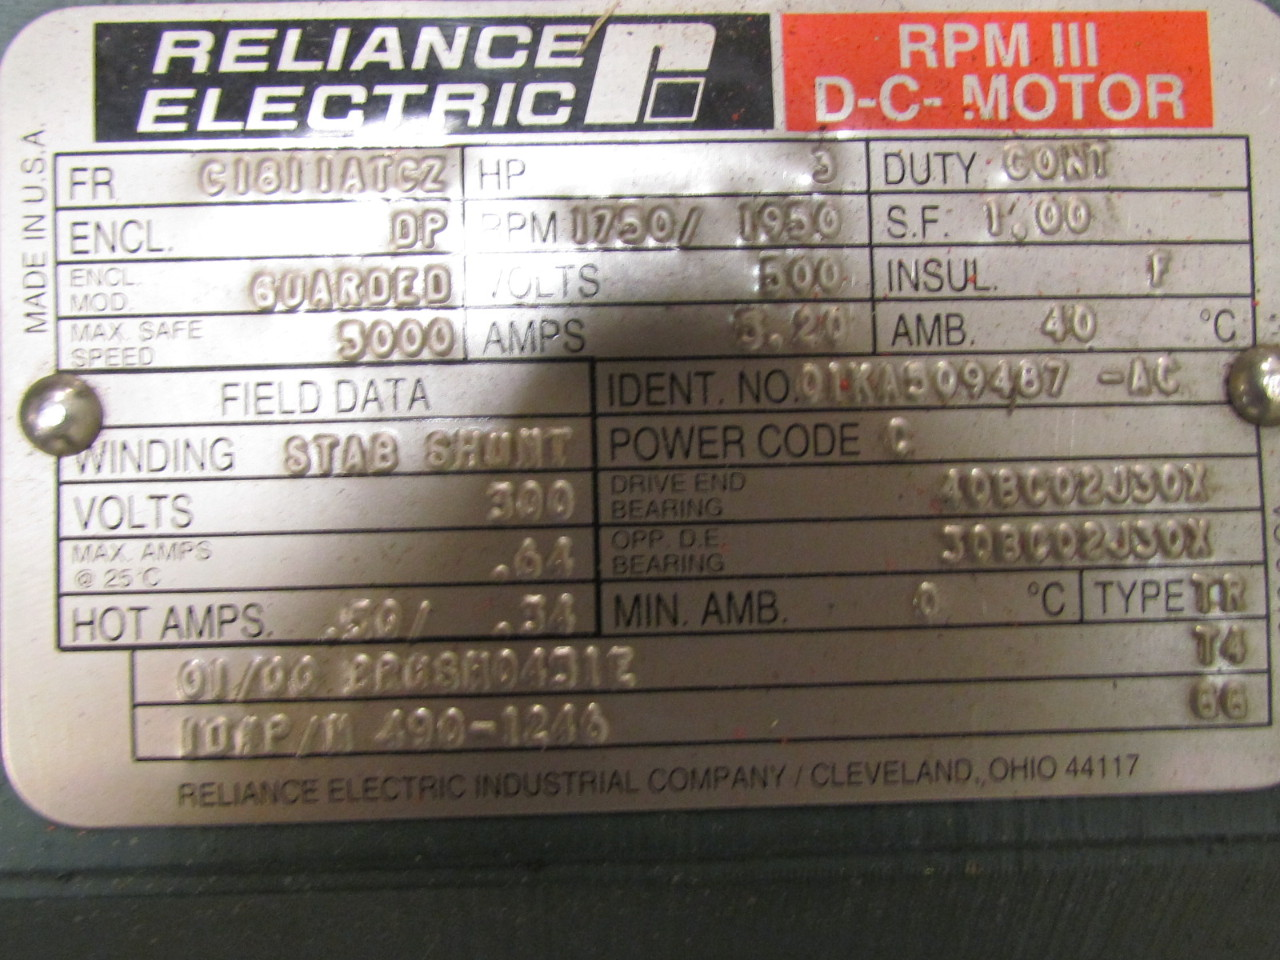 Reliance electric rpm iii dc motor t18r1333 3 hp ac for Reliance dc motor frame size chart